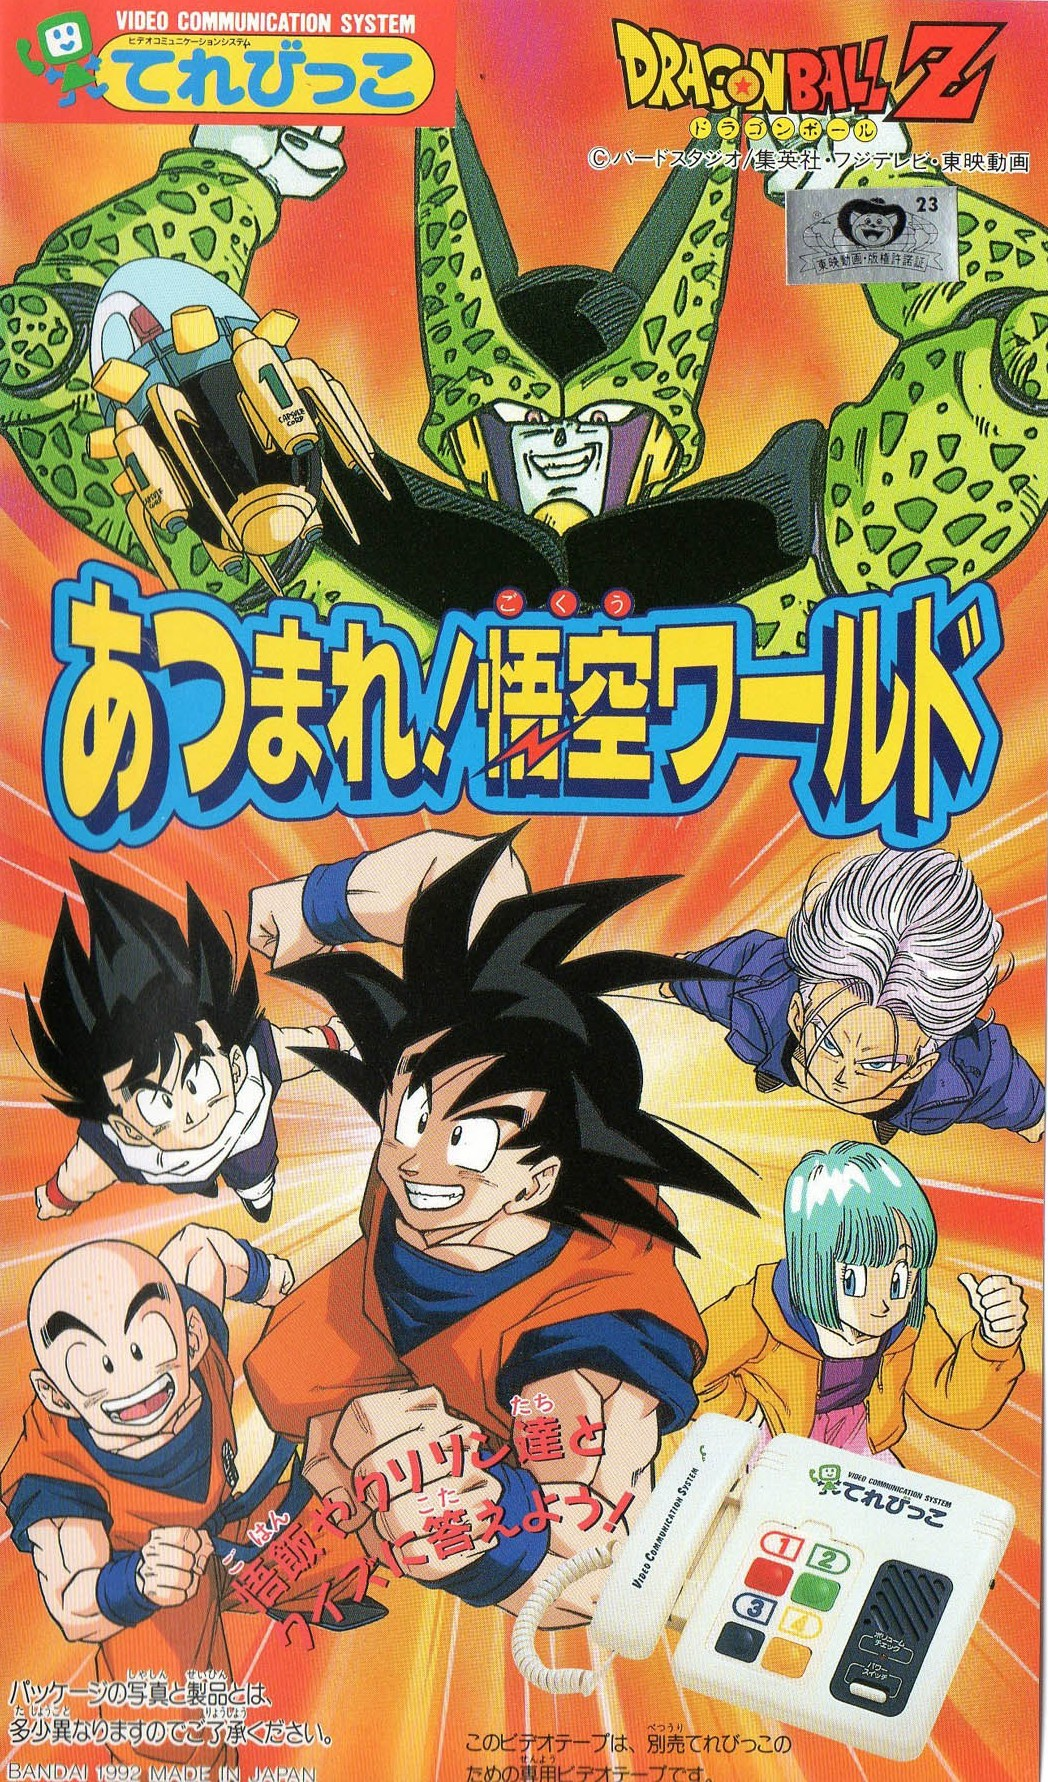 Front boxart of the game Dragon Ball Z Atsumare ! Goku Warudo on Bandai Terebikko